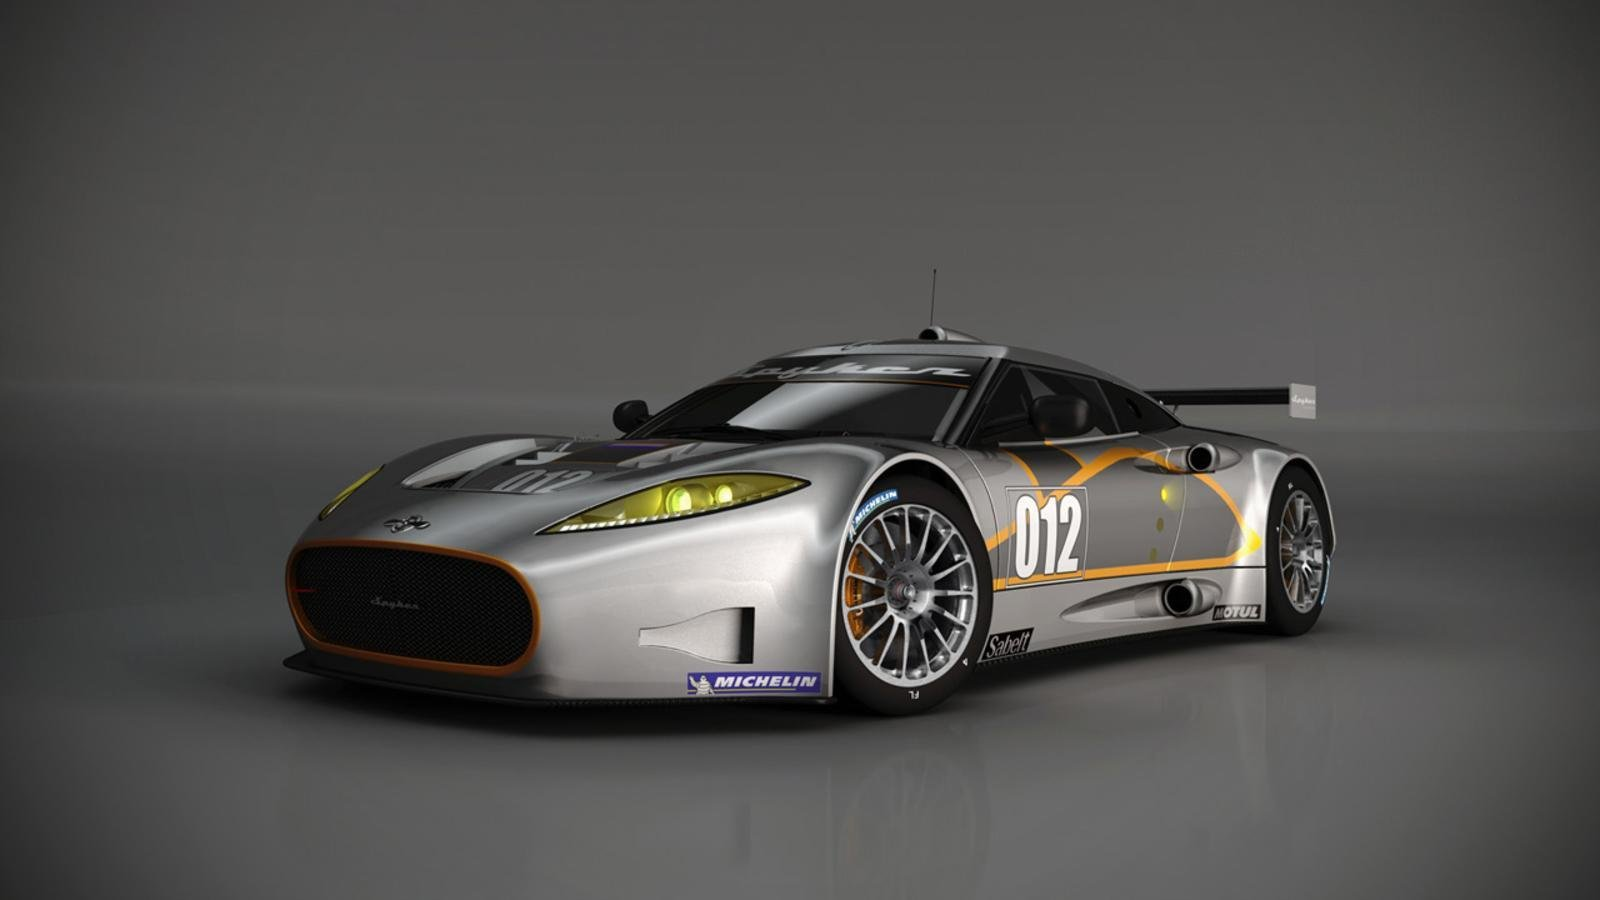 Latest Spyker Wallpapers Hd Download Free Download